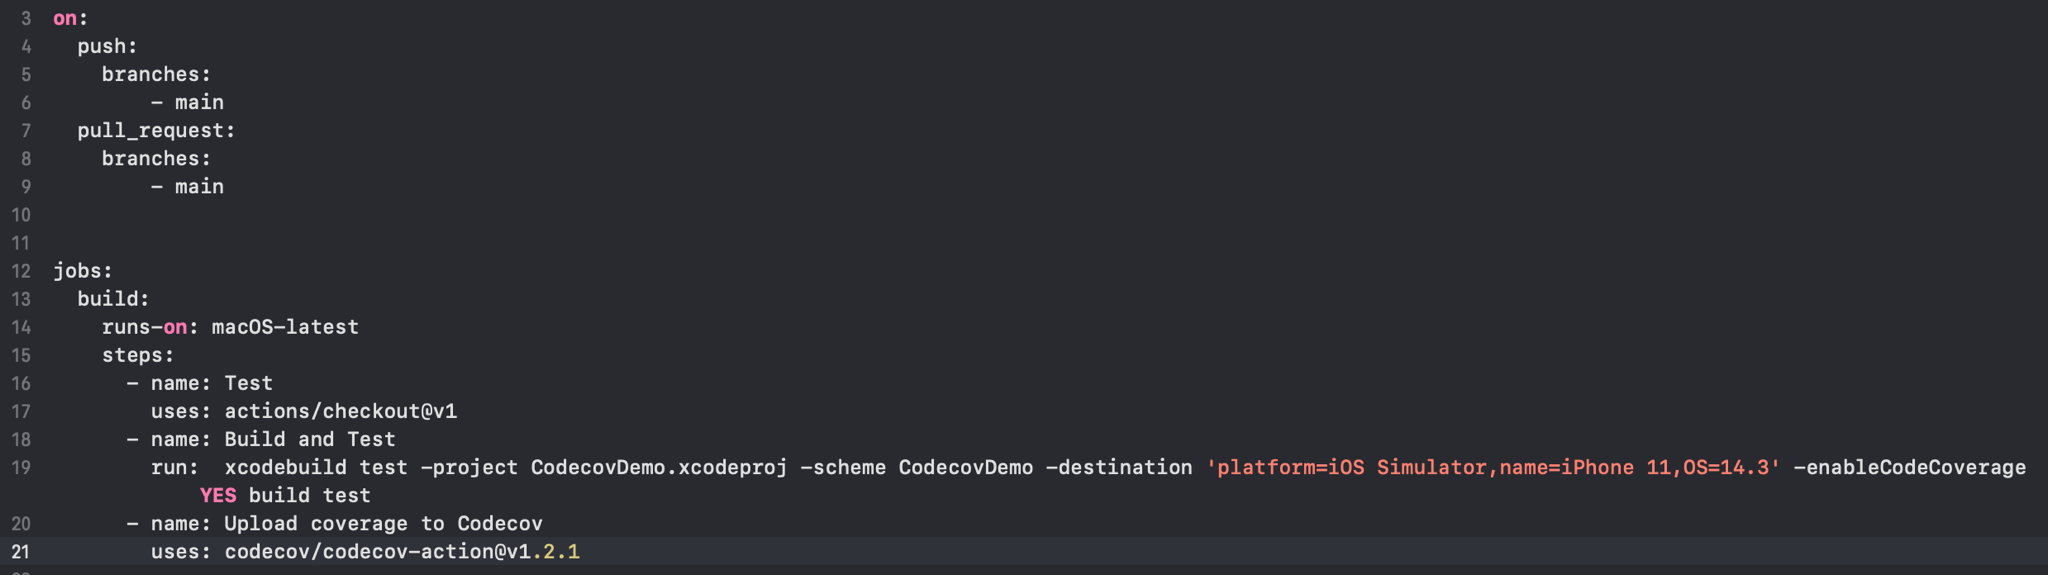 Adding Codecov to the .yml file